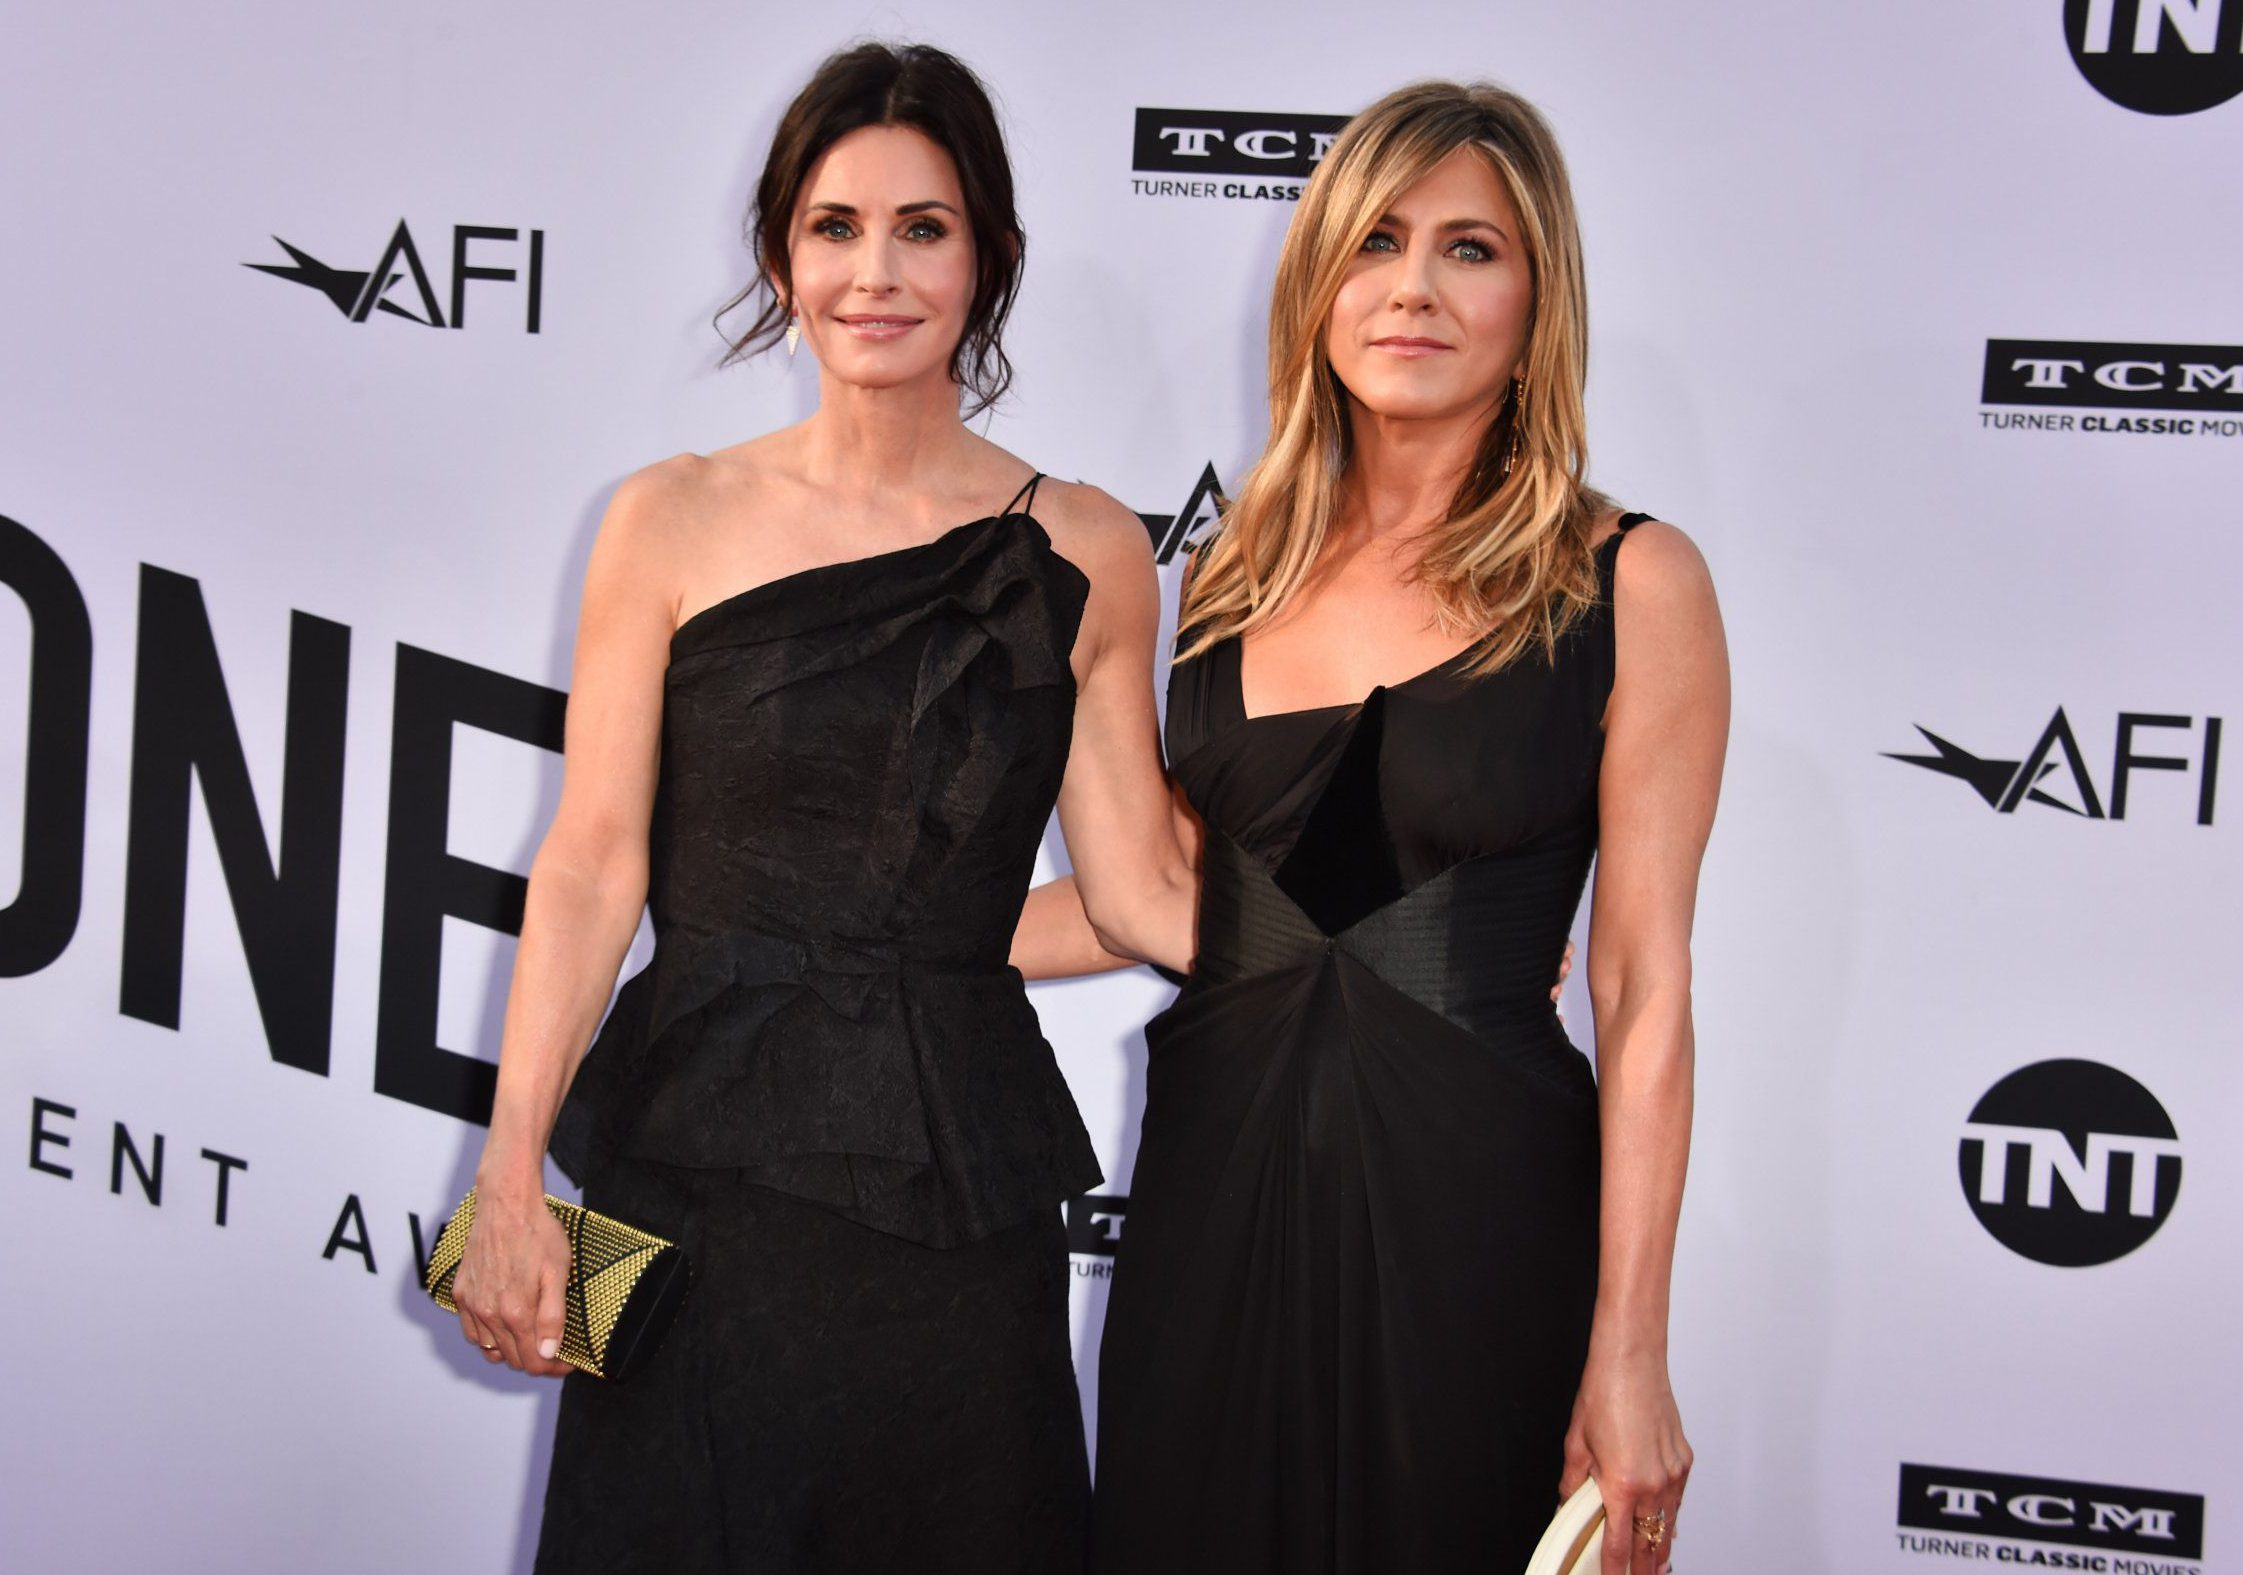 HOLLYWOOD, CA - JUNE 07: Courteney Cox (L) and Jennifer Aniston attend American Film Institute's 46th Life Achievement Award Gala Tribute to George Clooney at Dolby Theatre on June 7, 2018 in Hollywood, California. 390042 (Photo by Alberto E. Rodriguez/Getty Images for Turner )